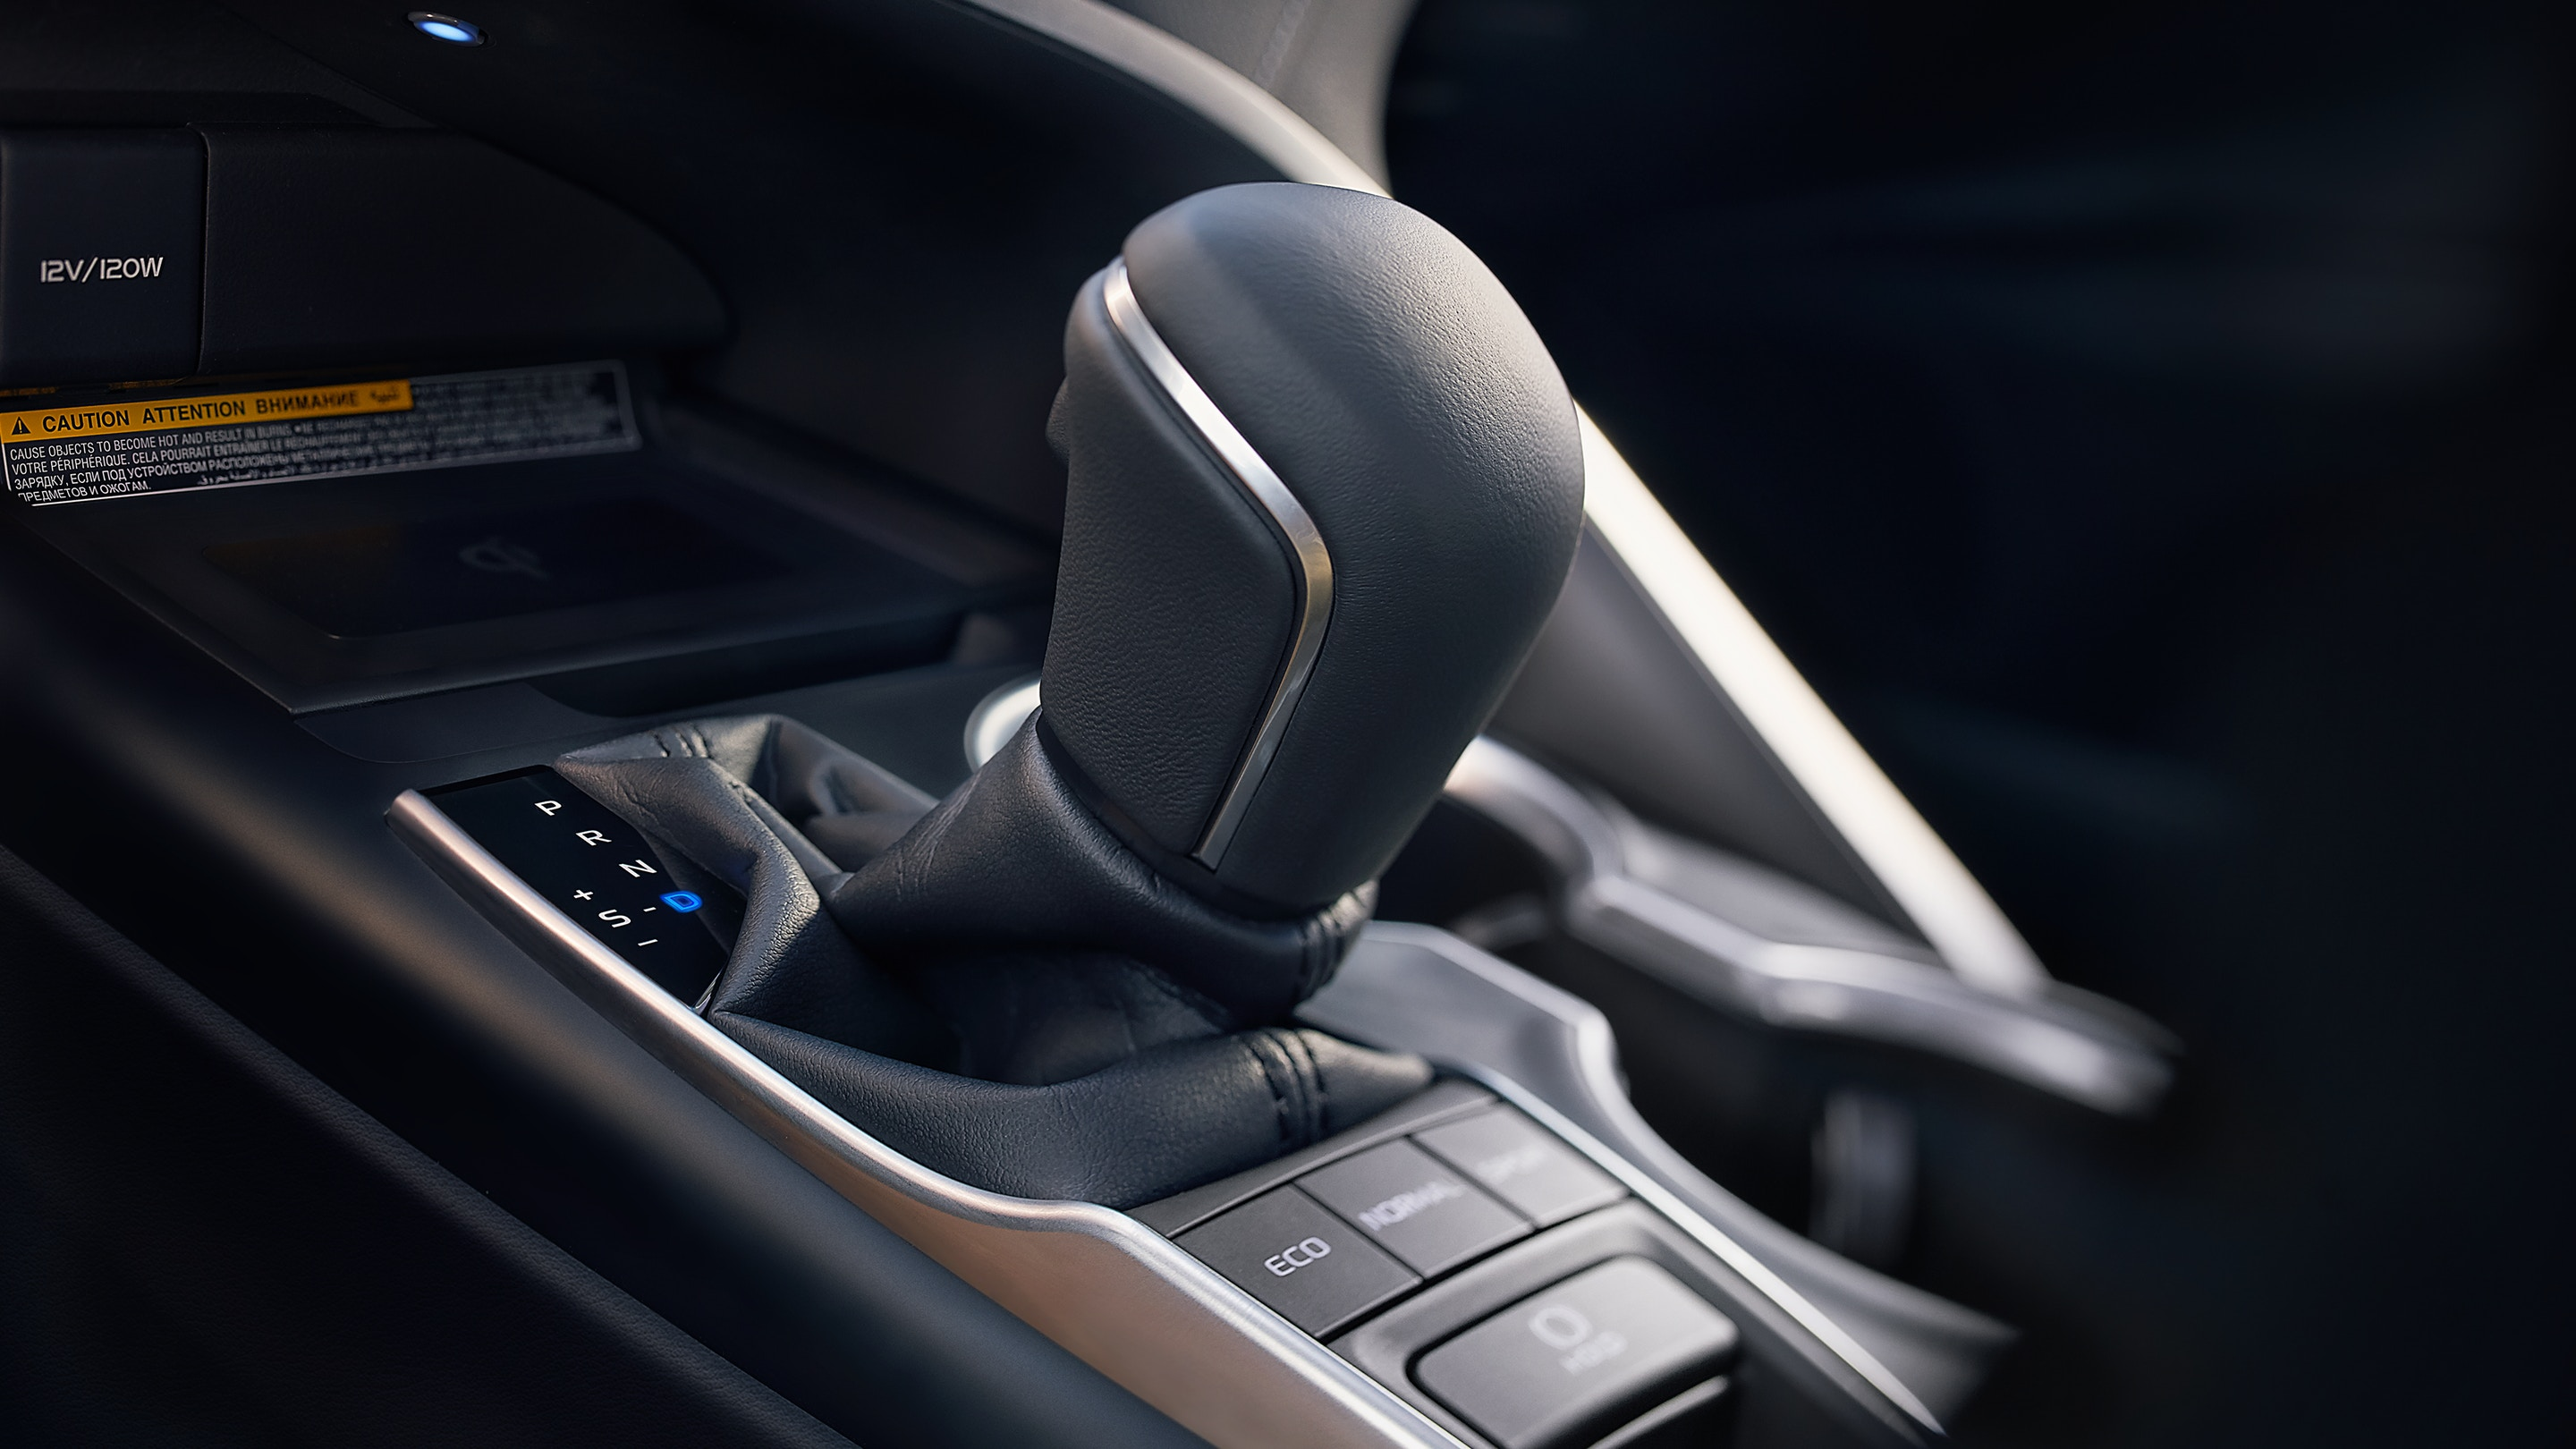 Gear Shift in the 2019 Camry